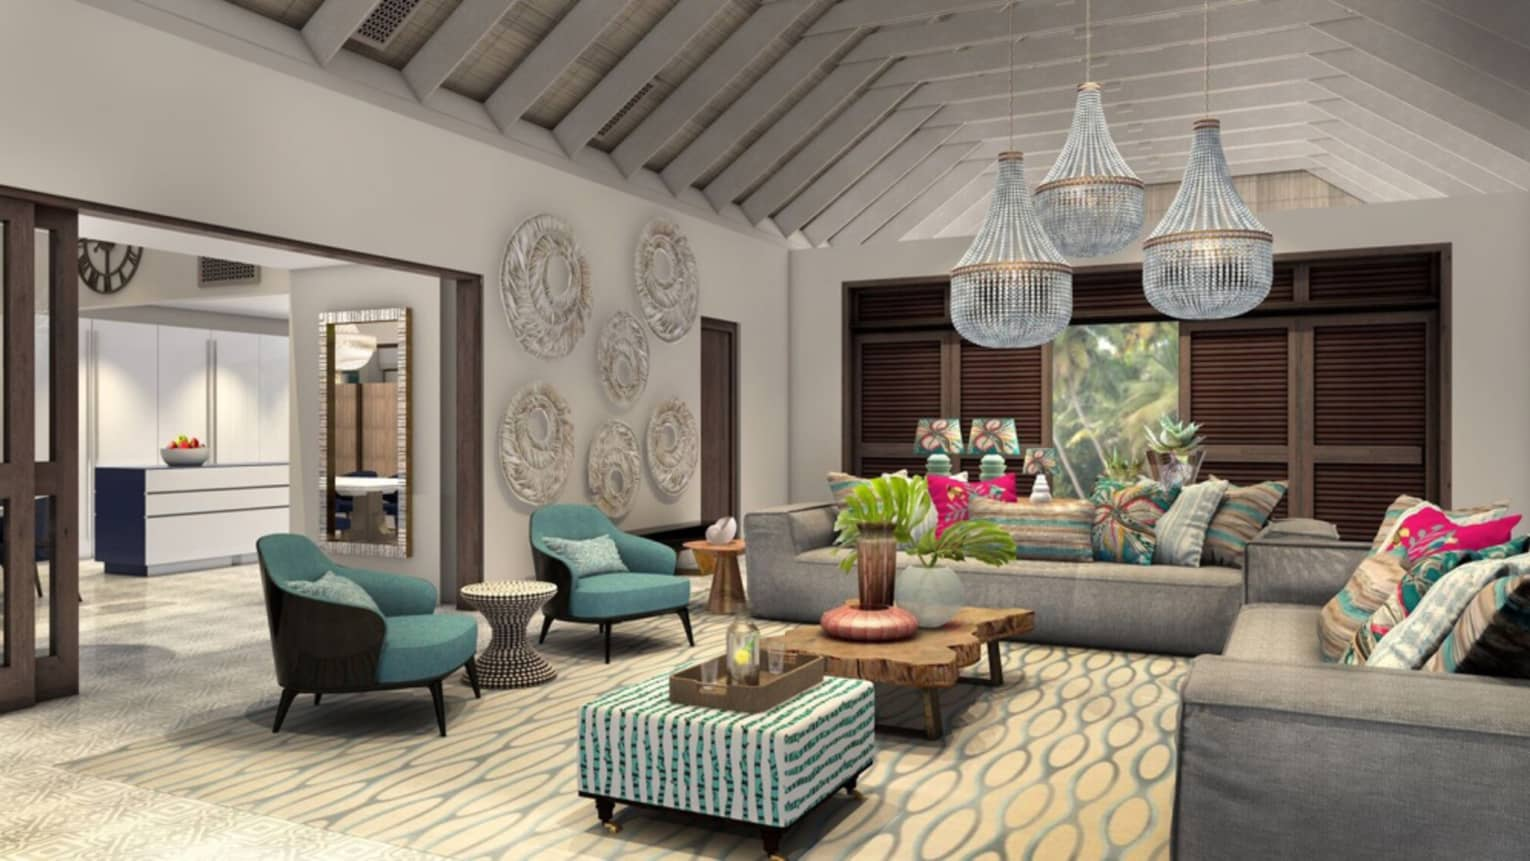 Seven-Bedroom Presidential Villa living room with grey sofas, teal armchairs, large chandeliers